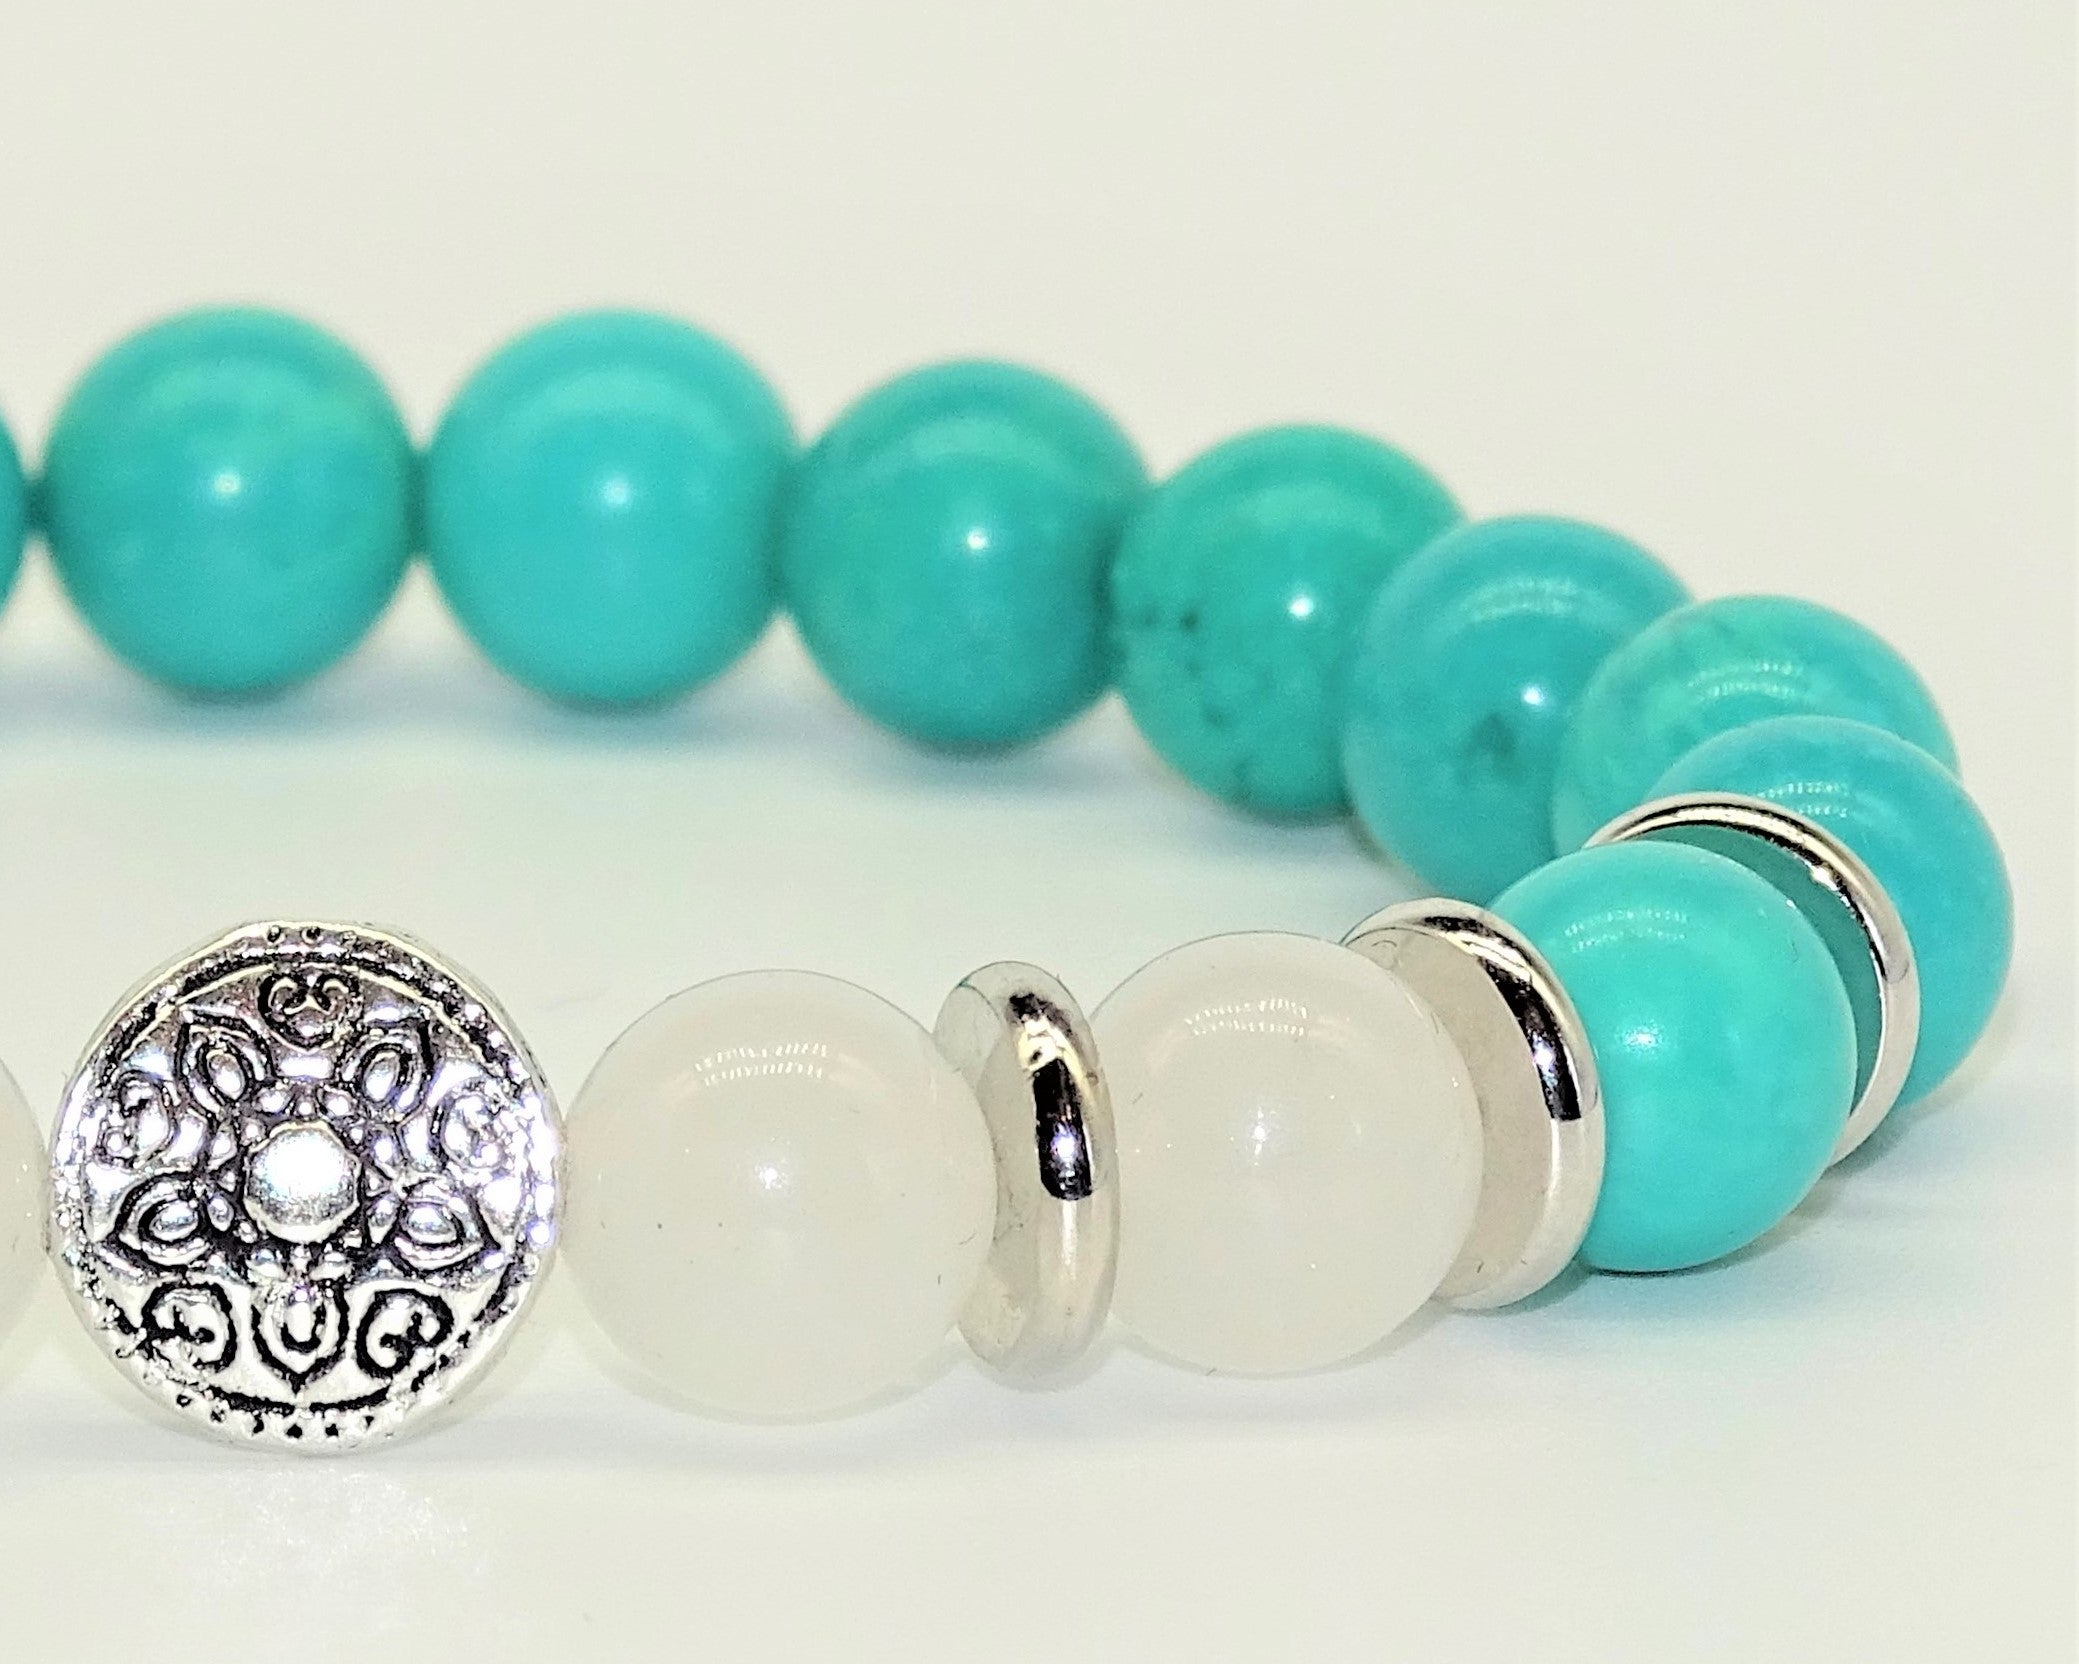 Turquoise & Clear Quartz - Master Healers, Intense & Accelerated Calming & Healing